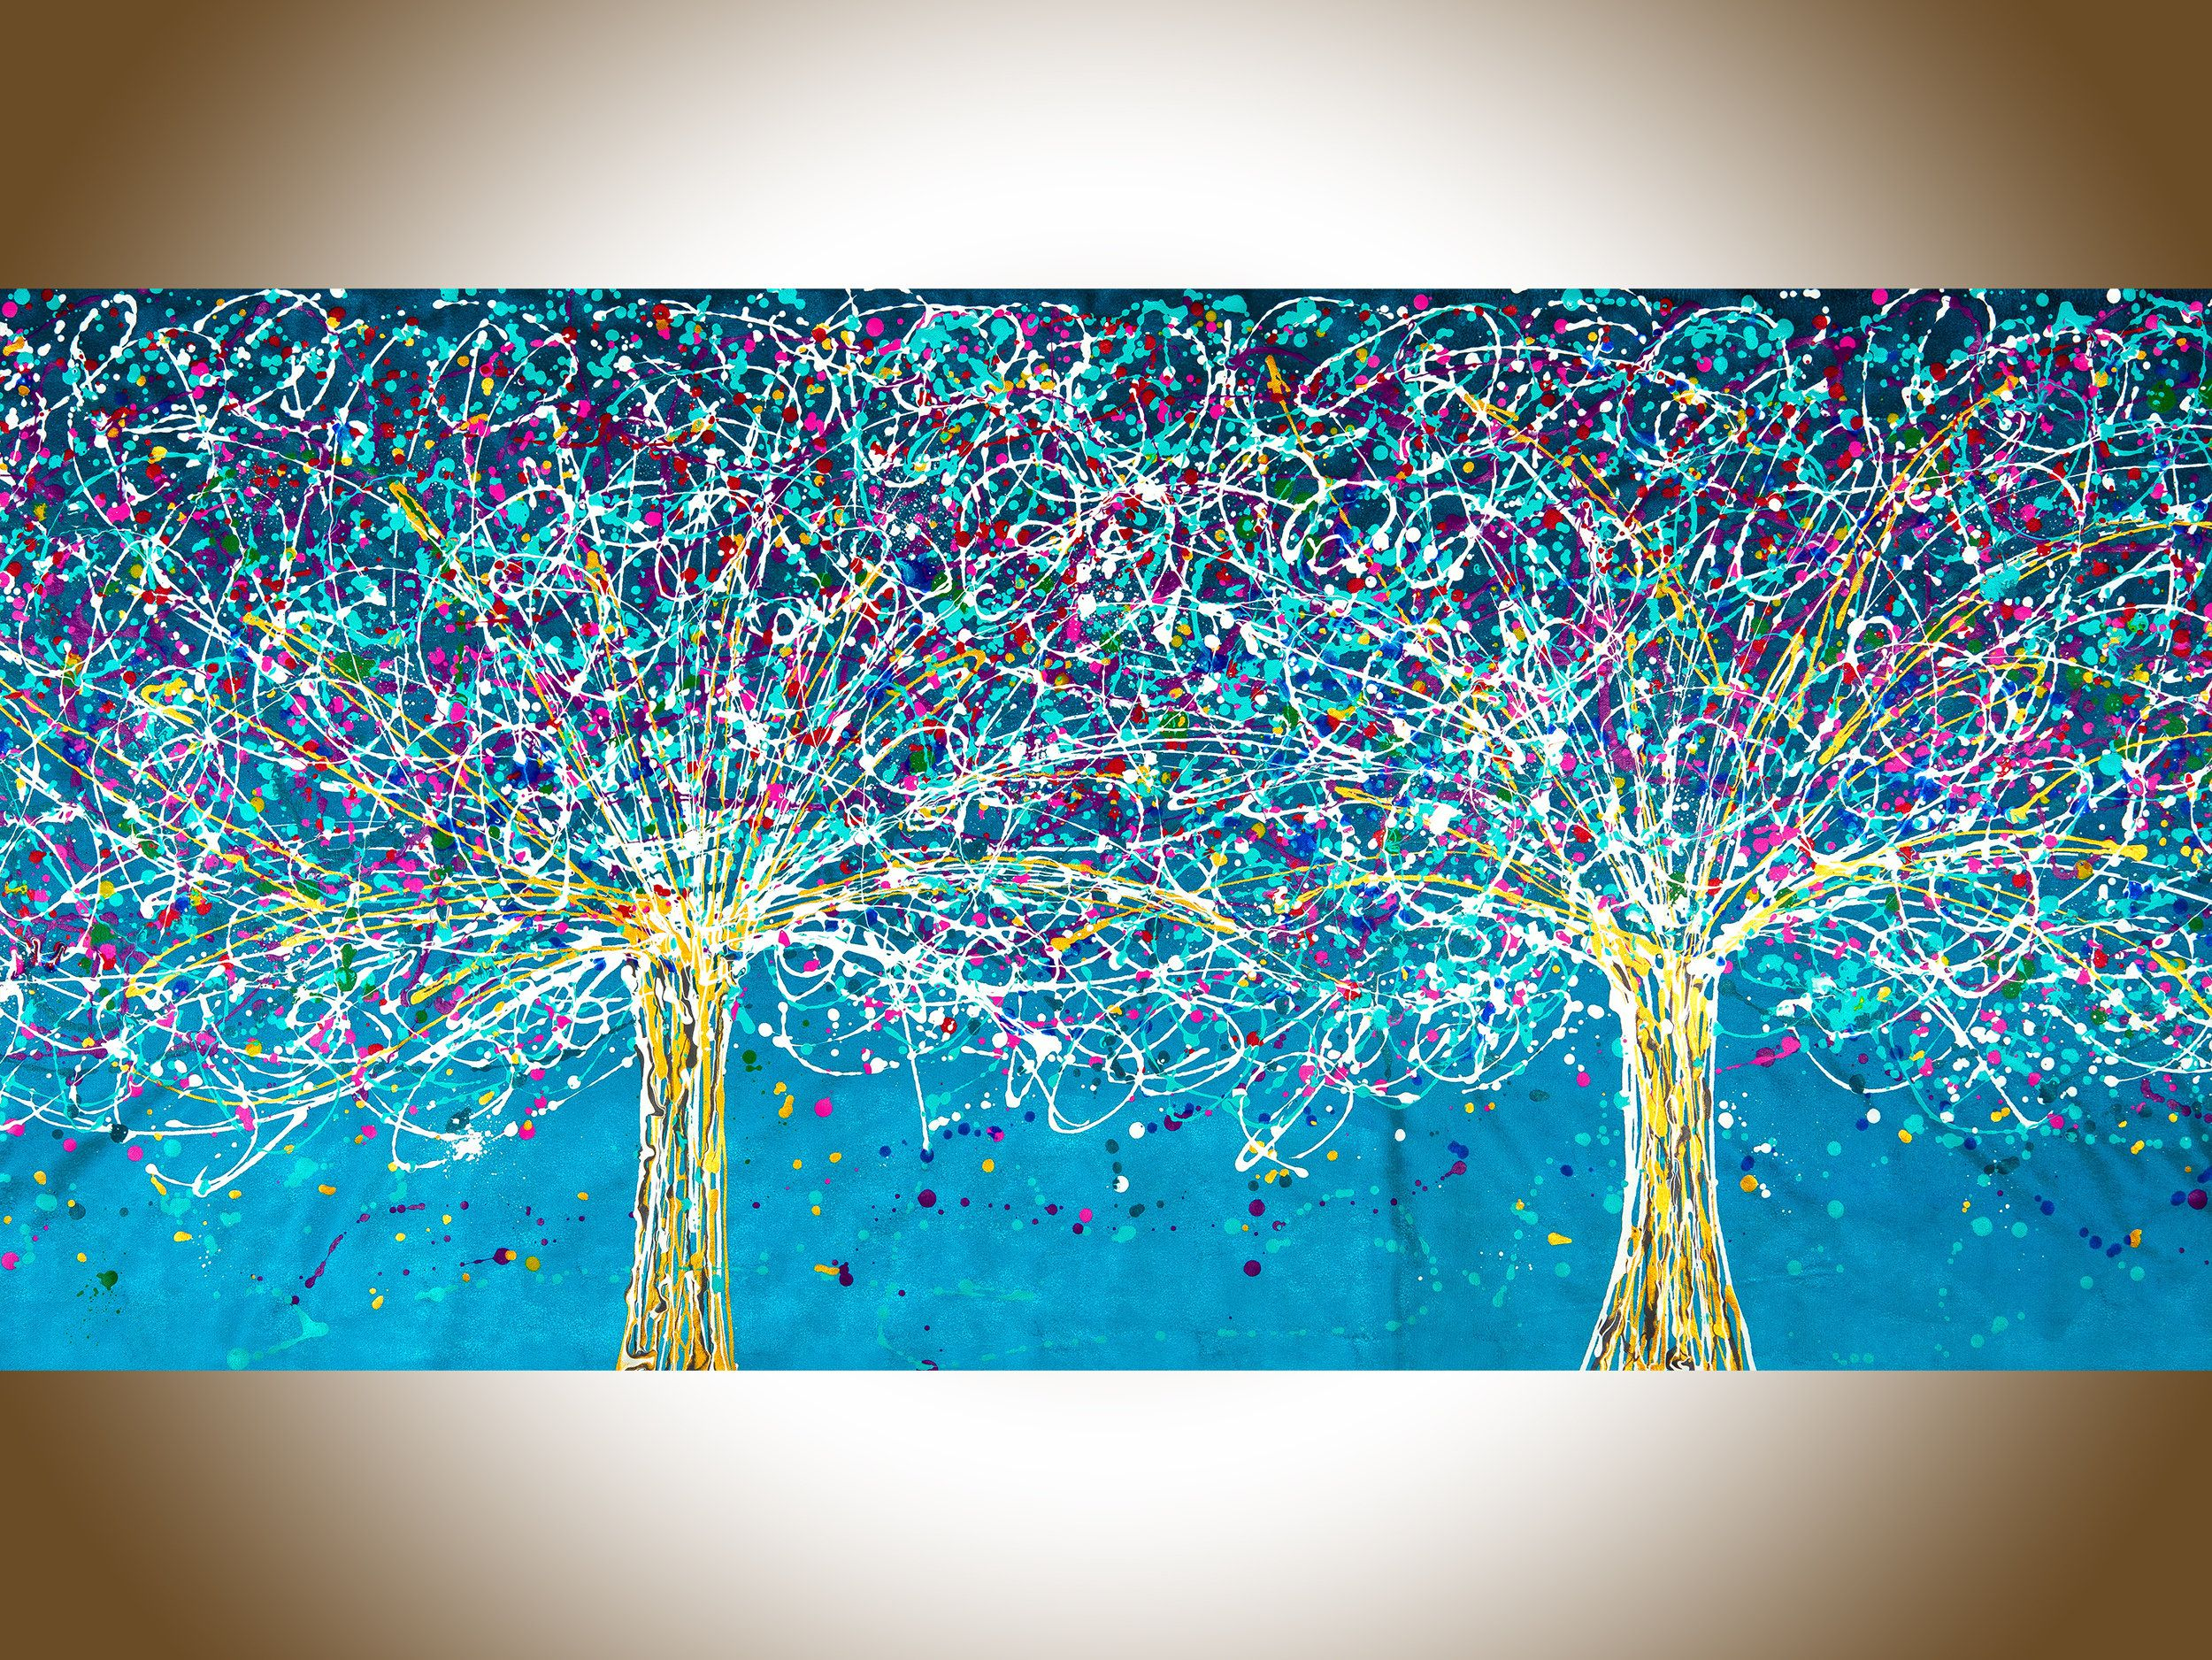 Jackson Pollock Canvas 72 Original Art Colorful Modern Art Large Wall Art Tree Landscape Painting By Yiqi Li Jackson Pollock Artwork Drip Art Original Art Painting